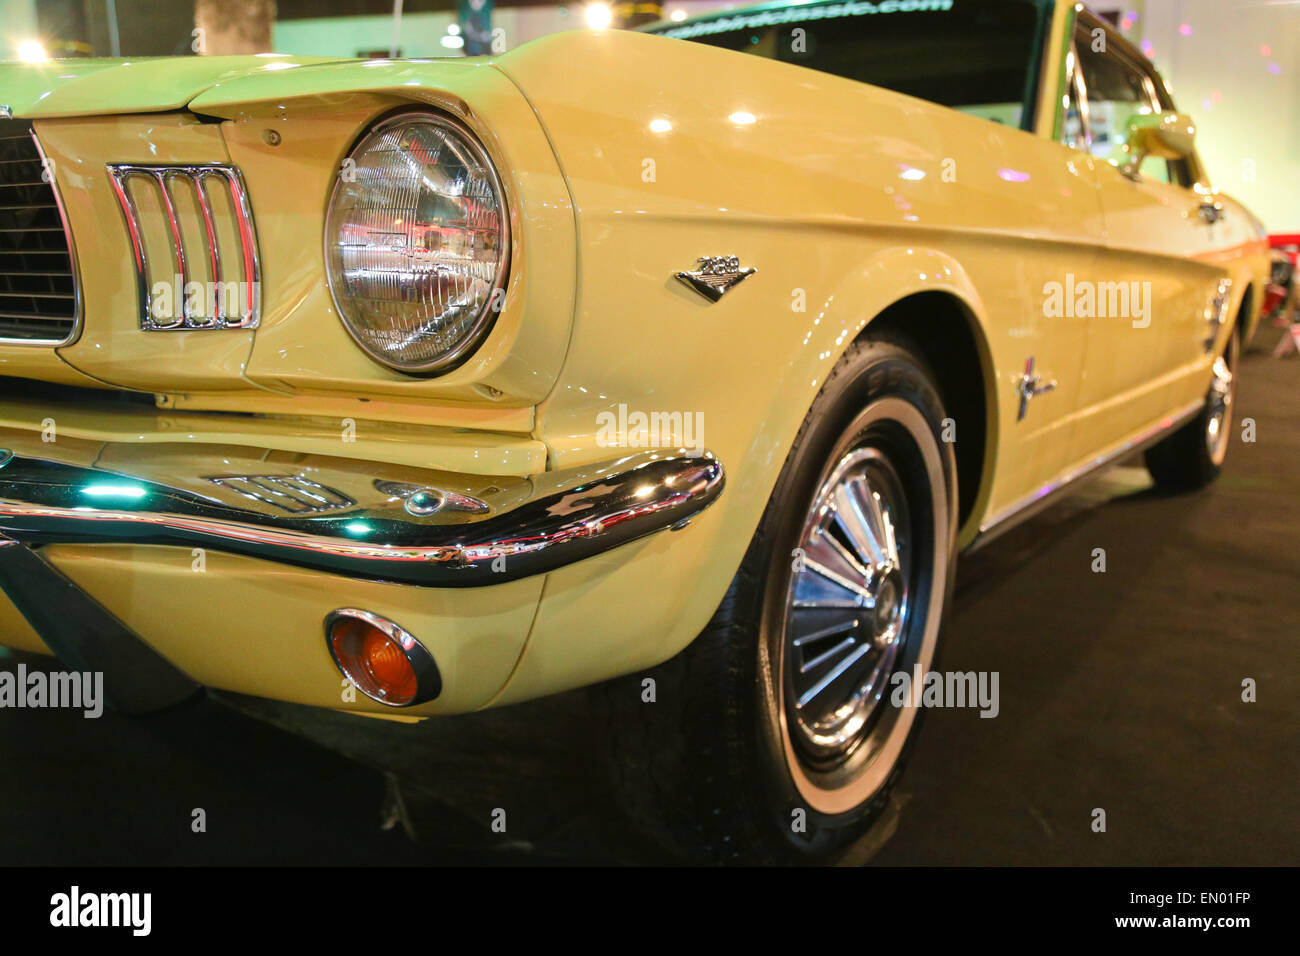 Ford Mustang Coupe 1965 model on display at KL International Motorshow  2013. - Stock Image 270bcffc89